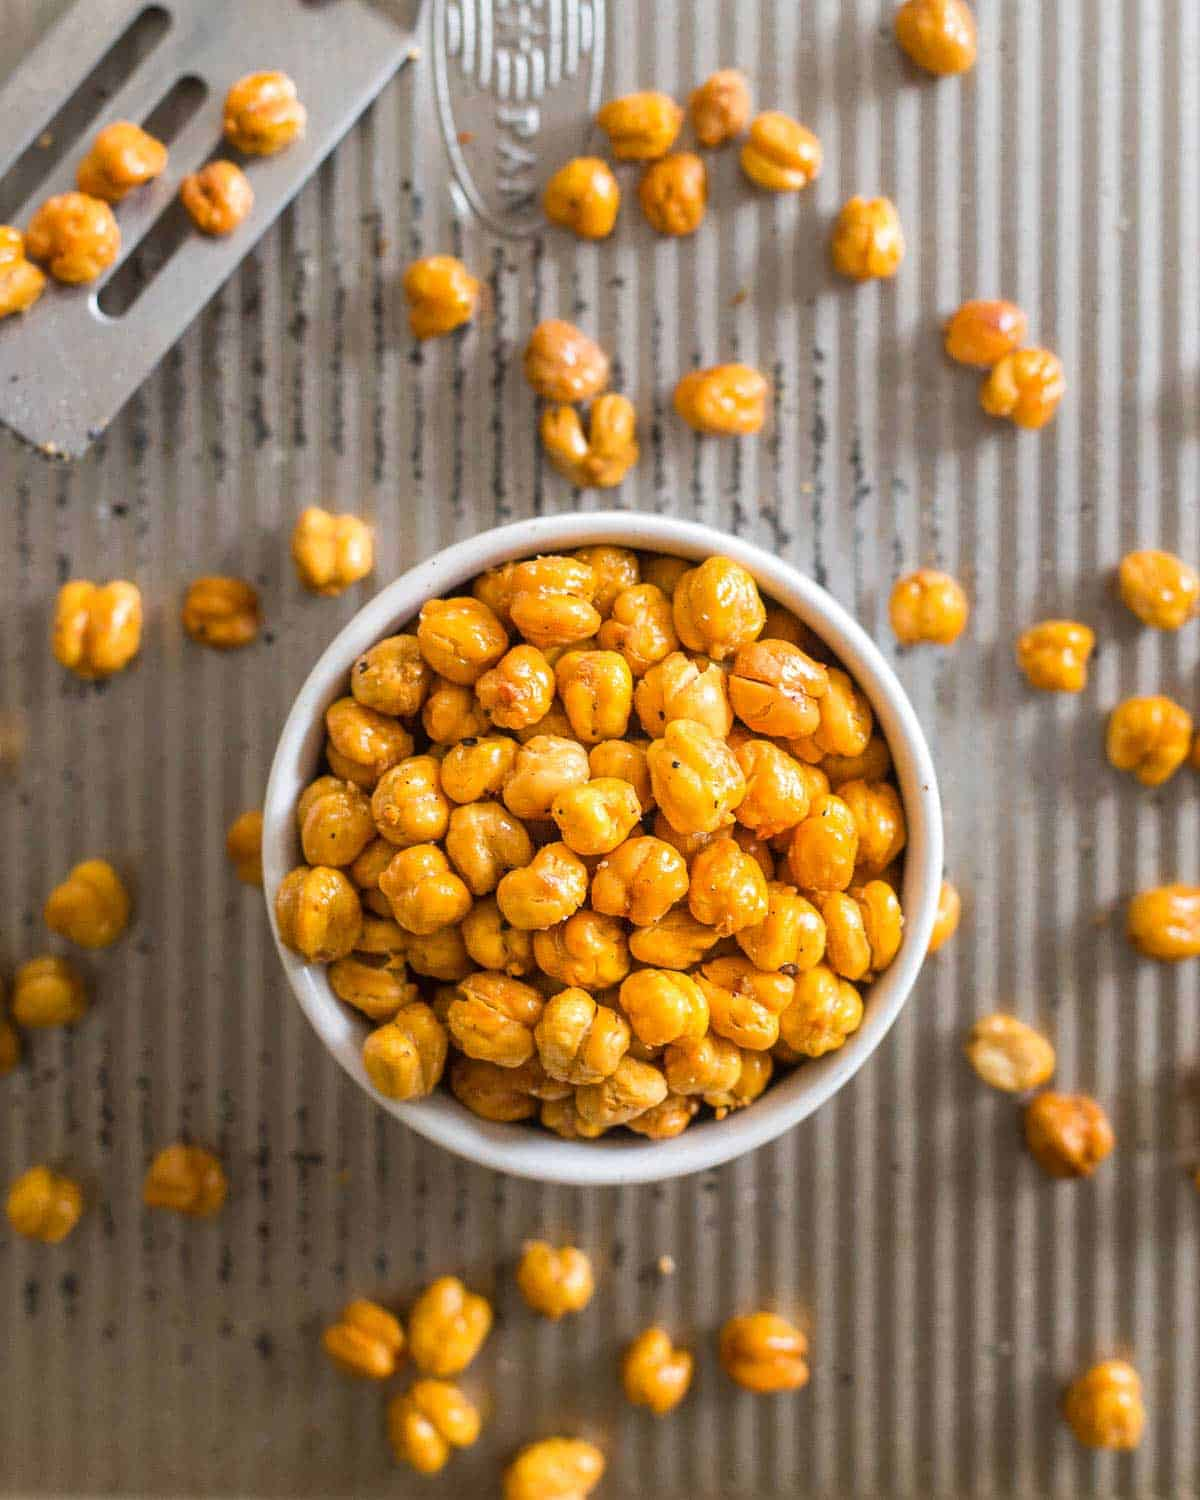 Roasted chickpeas are snack-worthy little protein-packed bites that make a fun appetizer alternative to nuts or a great salad topper.